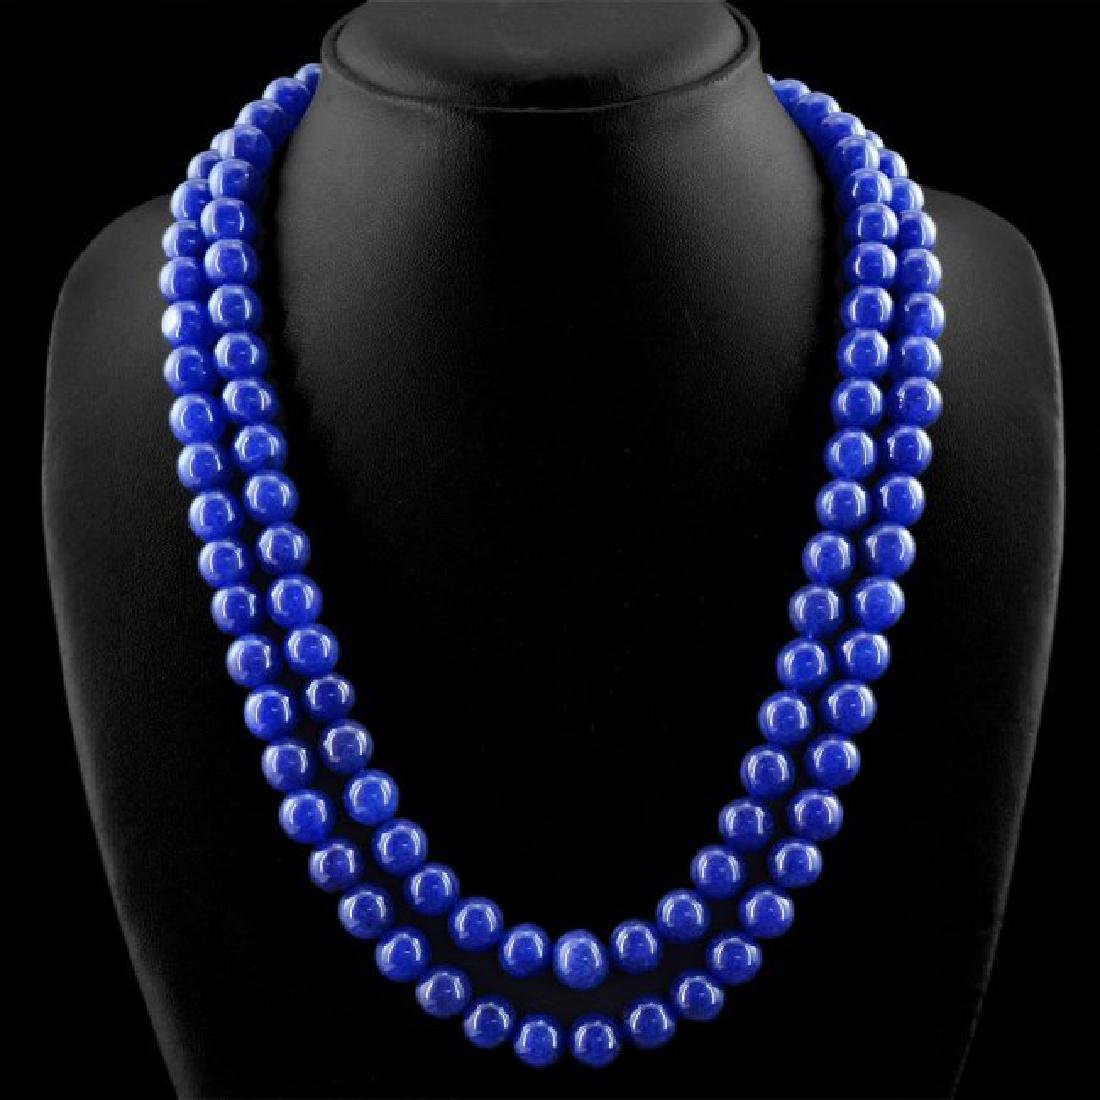 EARTH-MINED-2-LINE-RICH-BLUE-SAPPHIRE-ROUND-SHAPE - 2